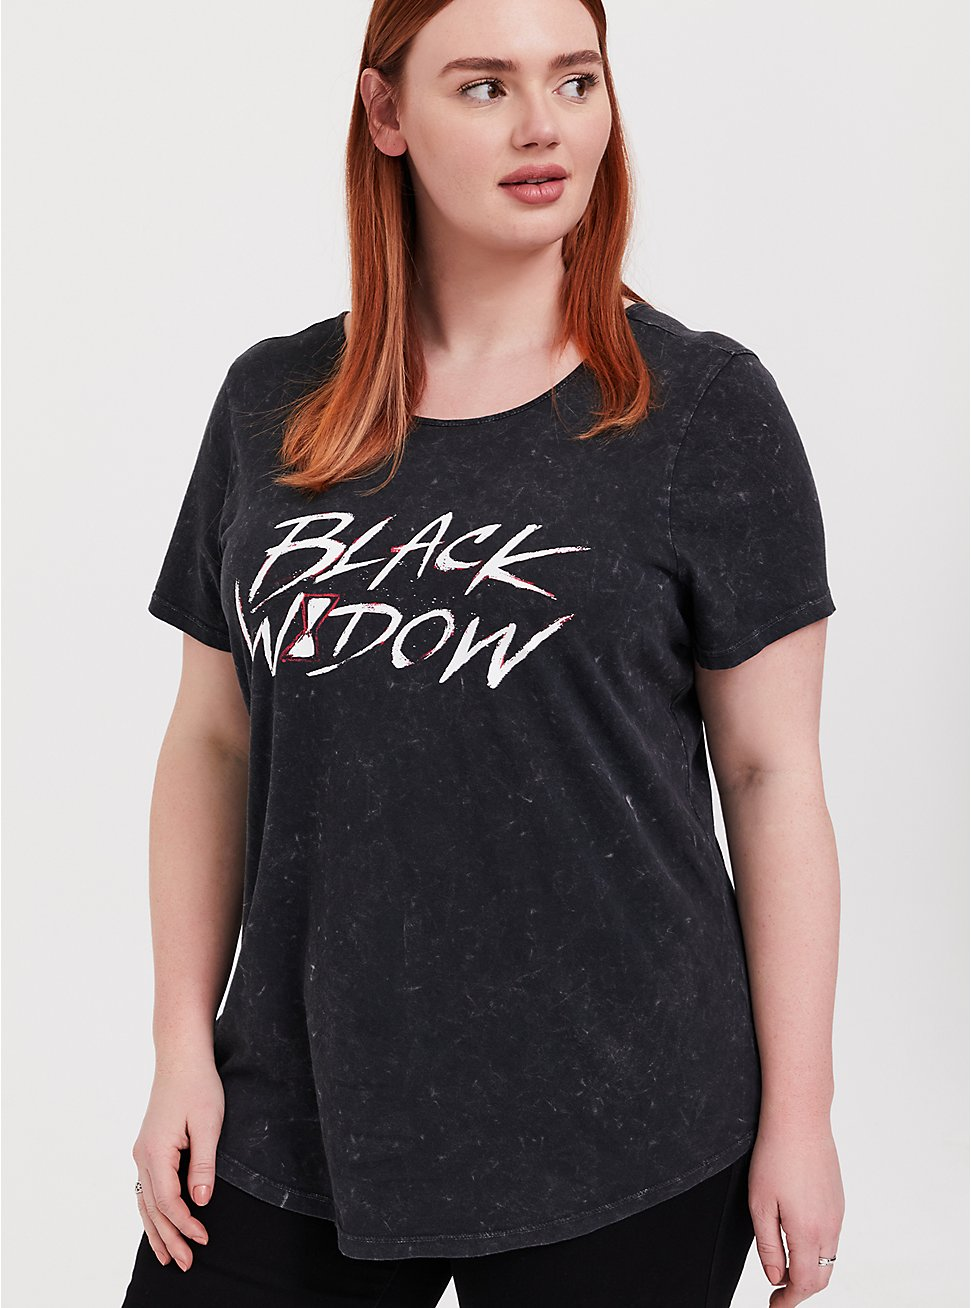 Her Universe Marvel Black Widow Cage Back Black Mineral Wash Top, DEEP BLACK, hi-res